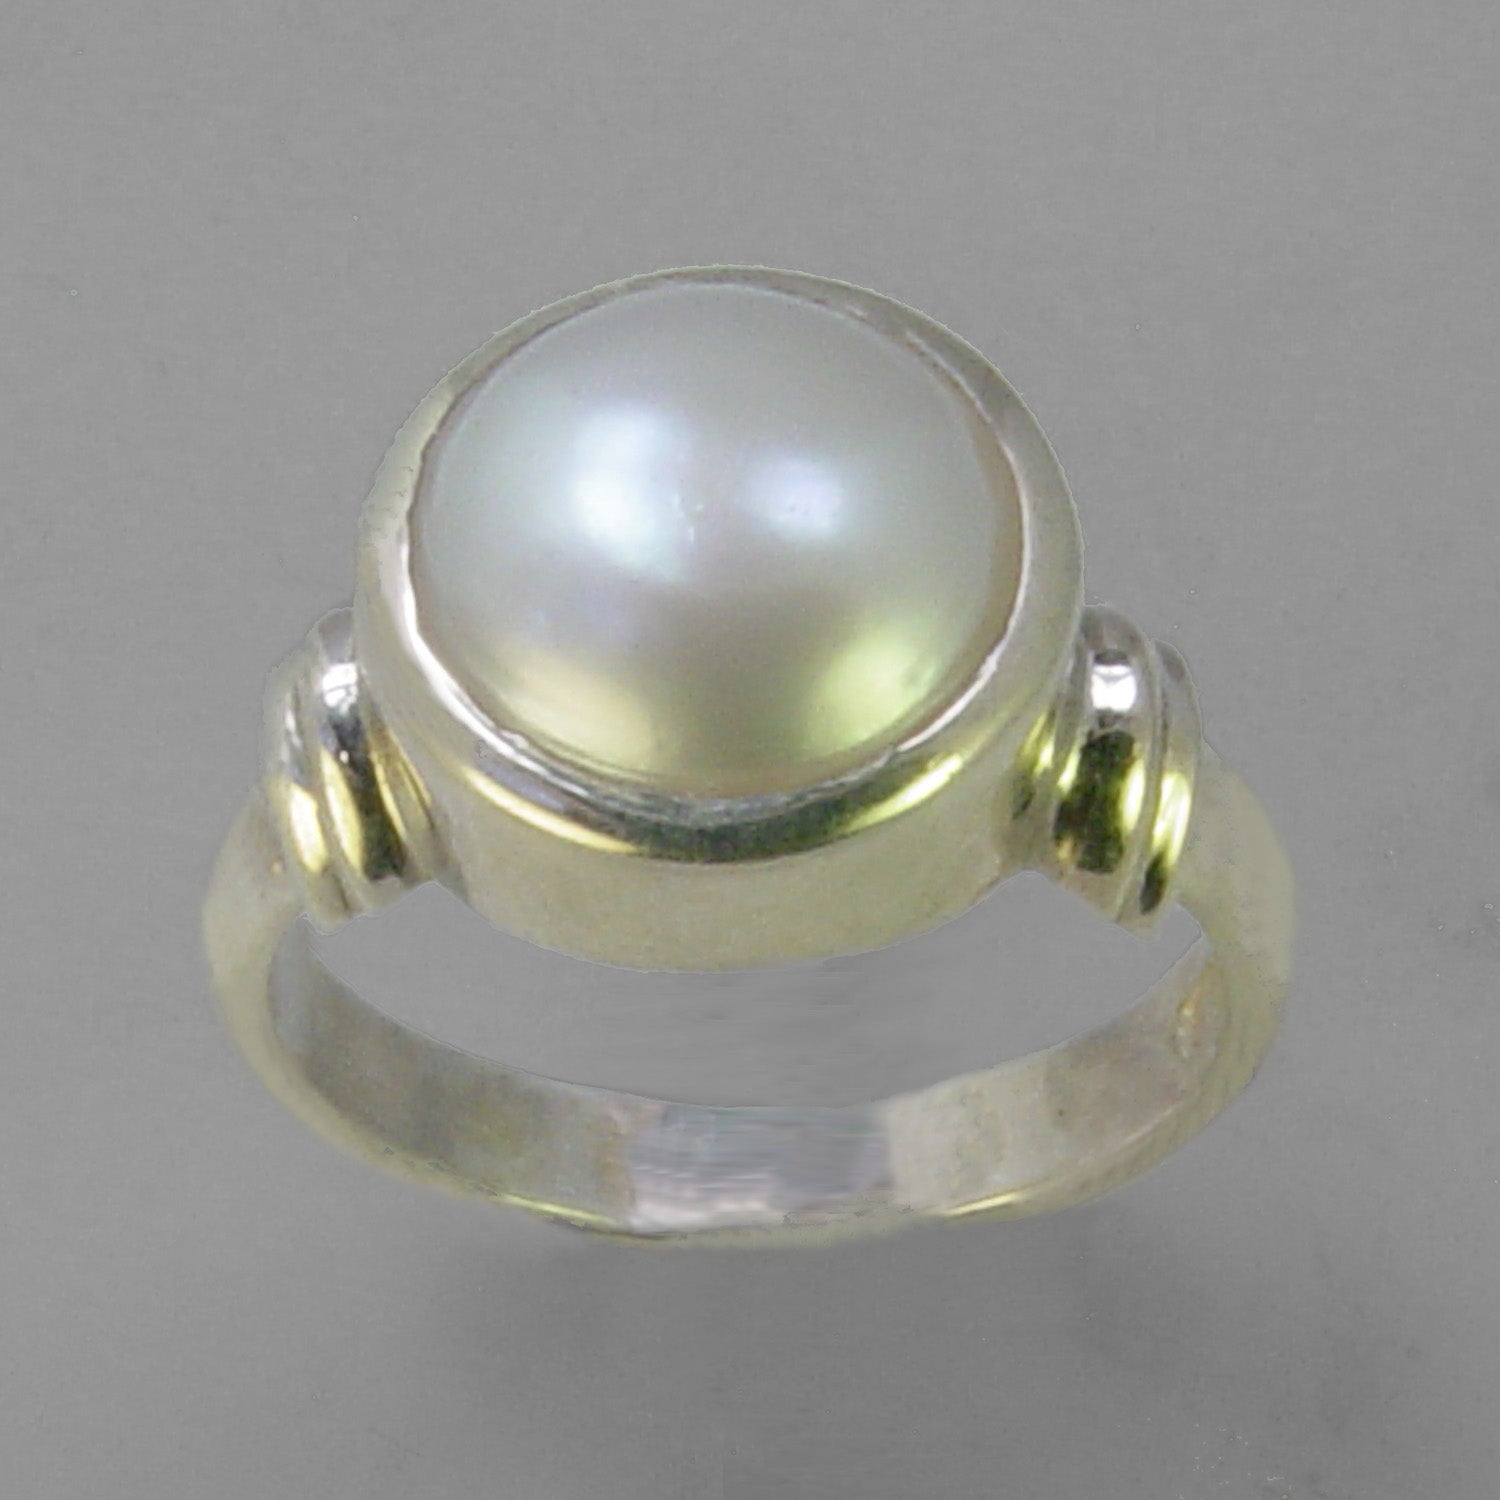 Pearl 7.5 ct Freshwater Pearl Bezel Set Shoulder Shank Sterling Silver Ring, Size 6